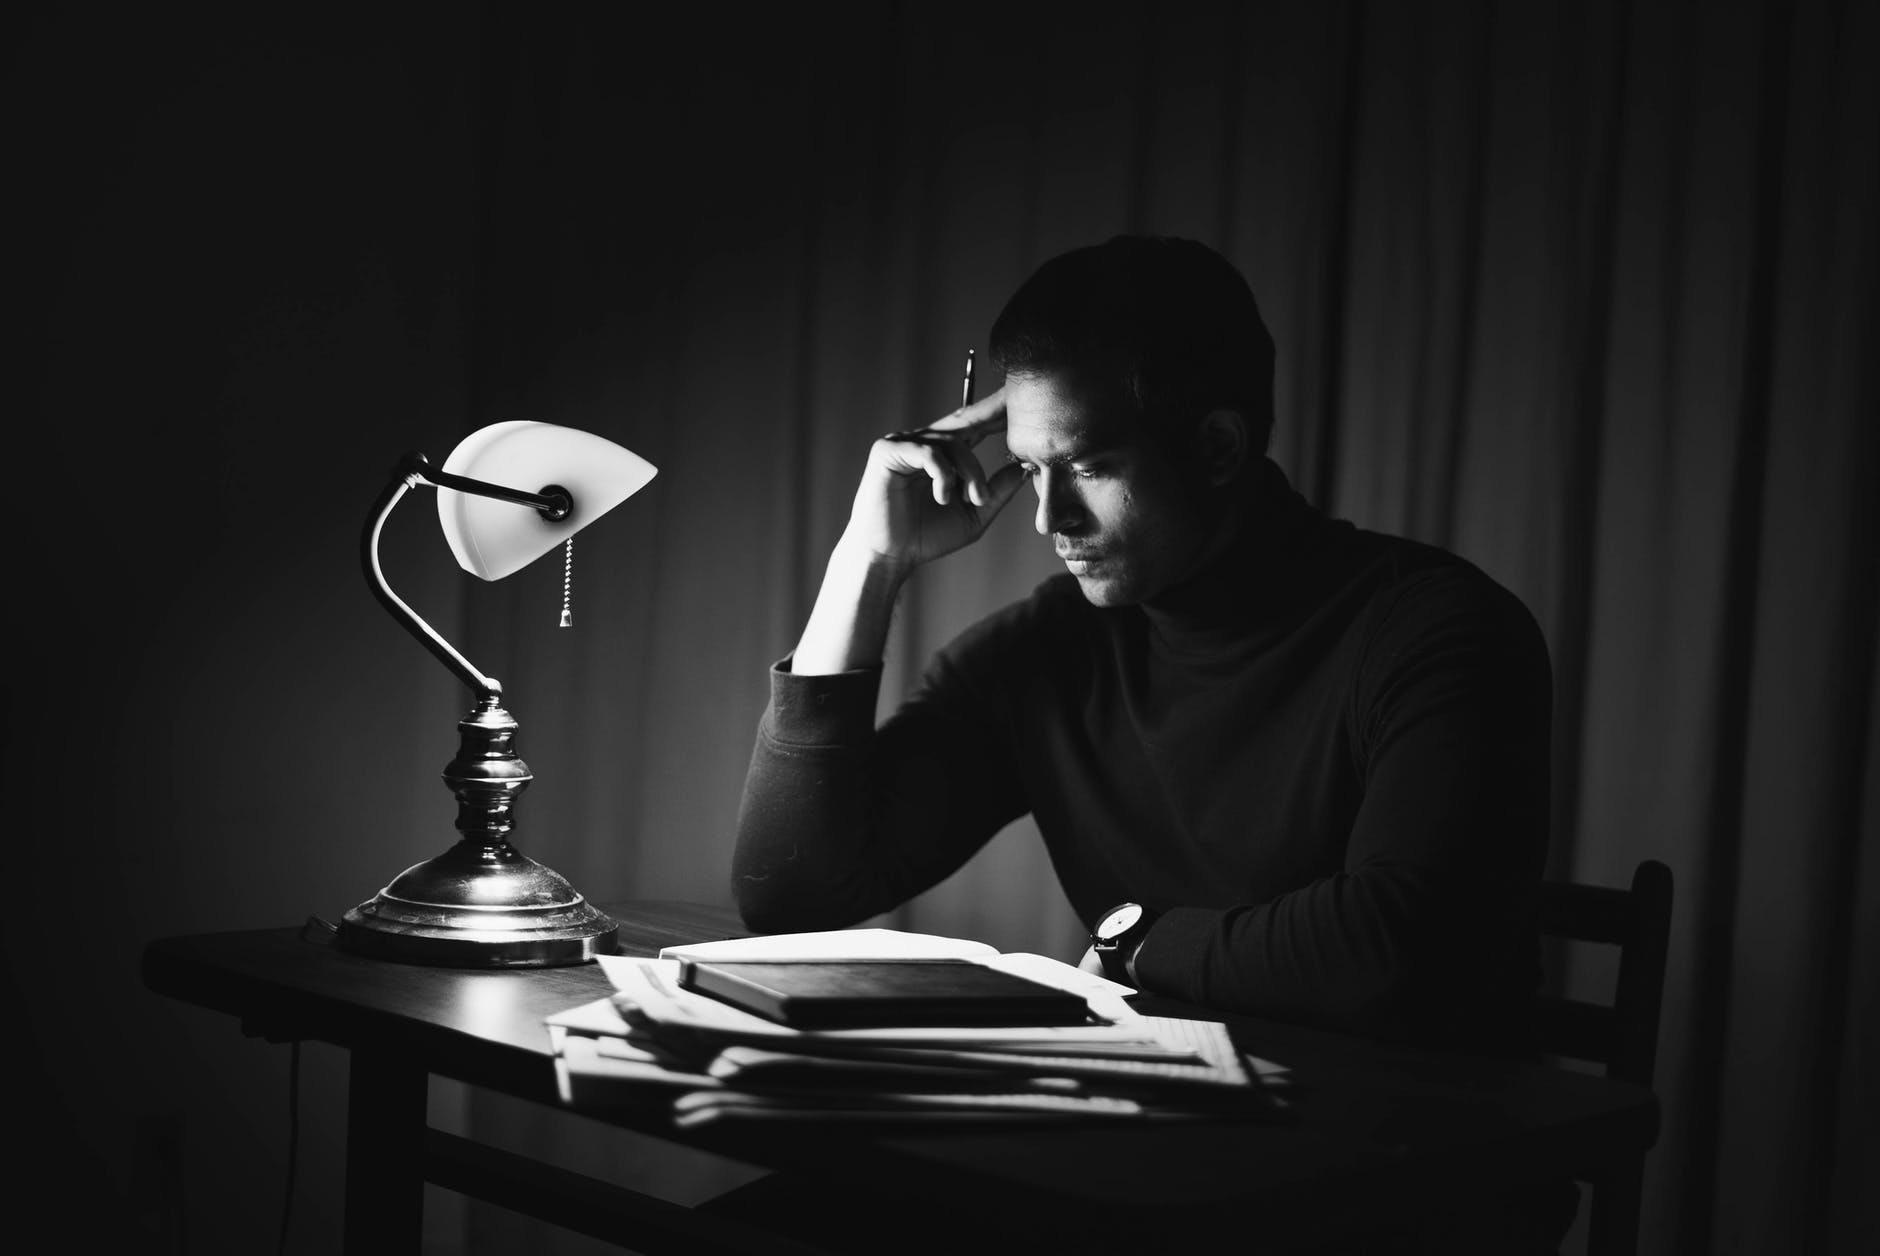 contemplative man reading book in classy home office